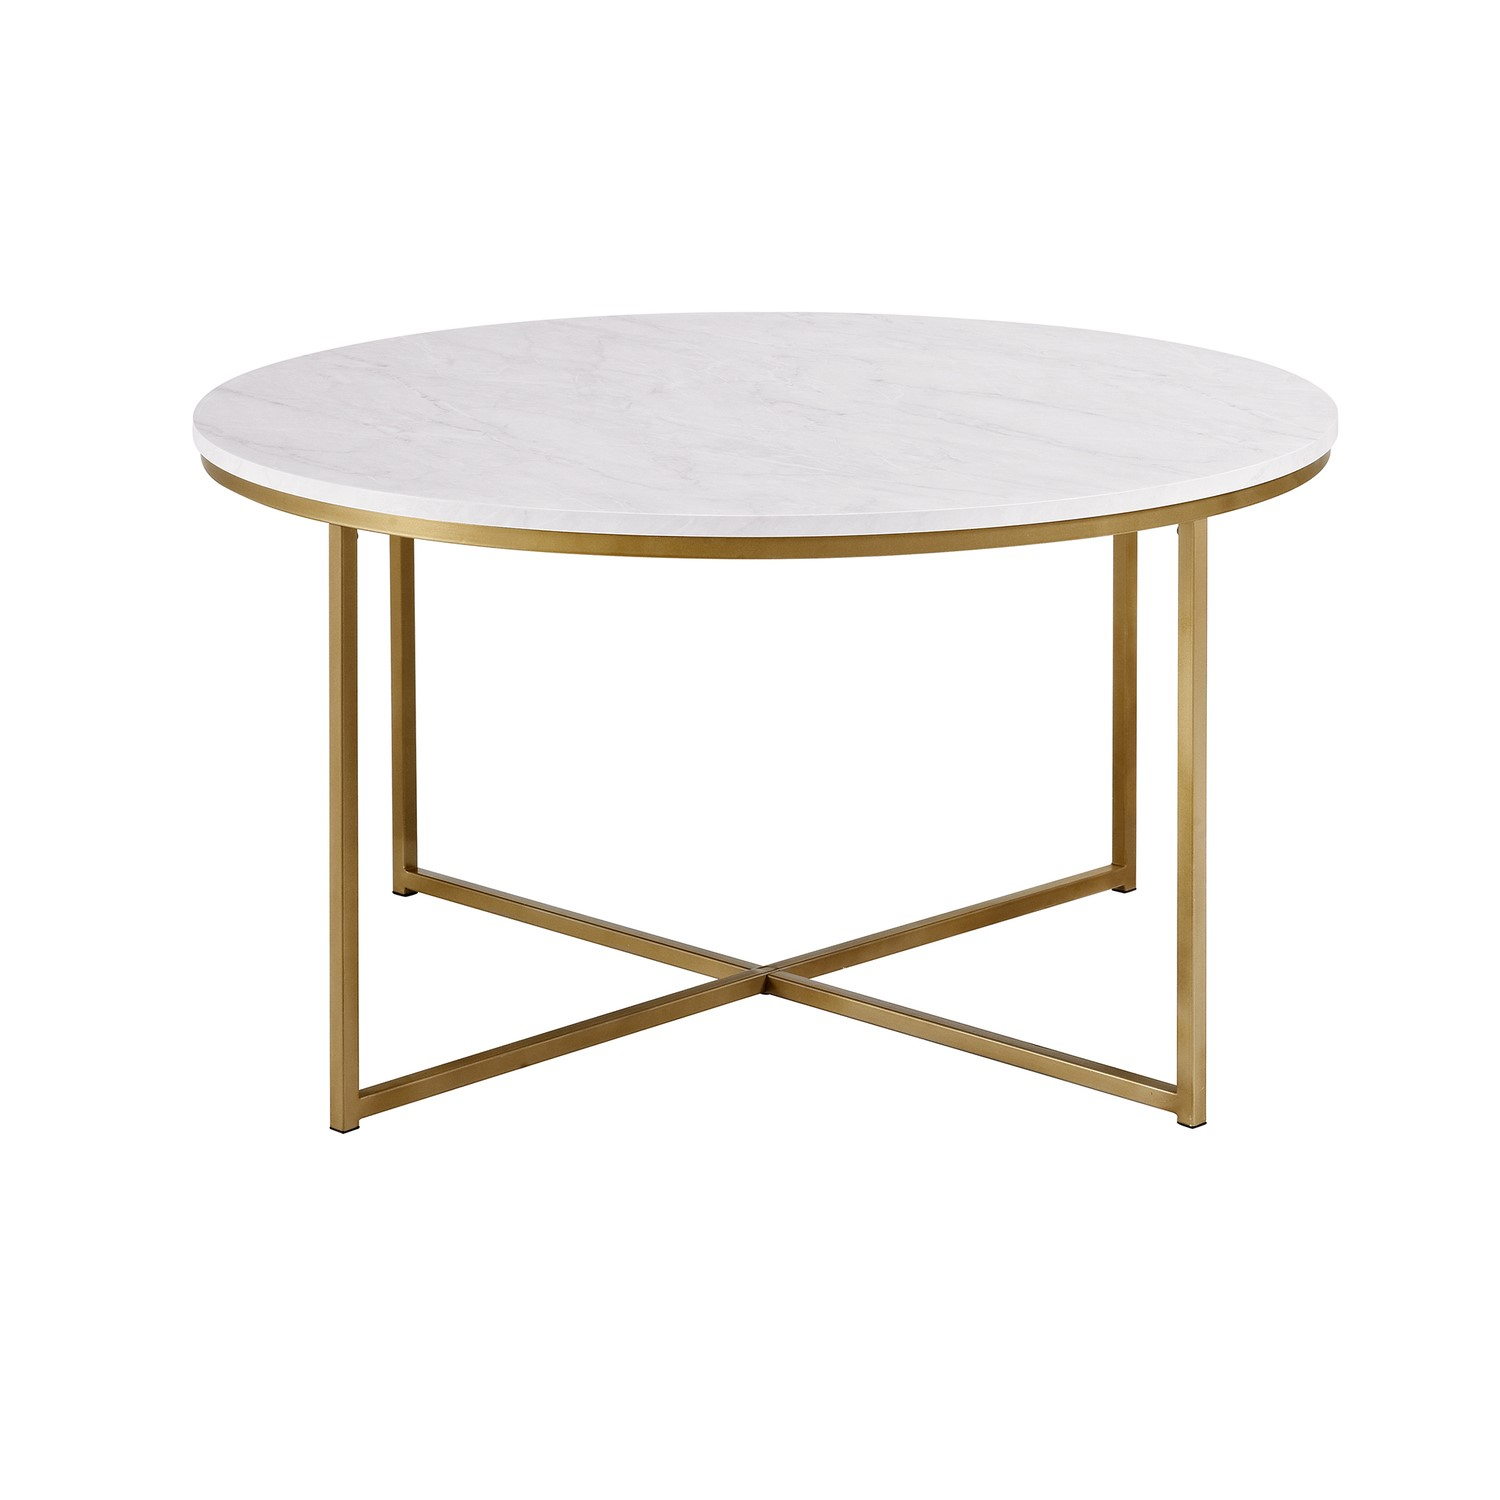 Grade A2 Foster White Faux Marble Coffee Table With Gold Base Furniture123